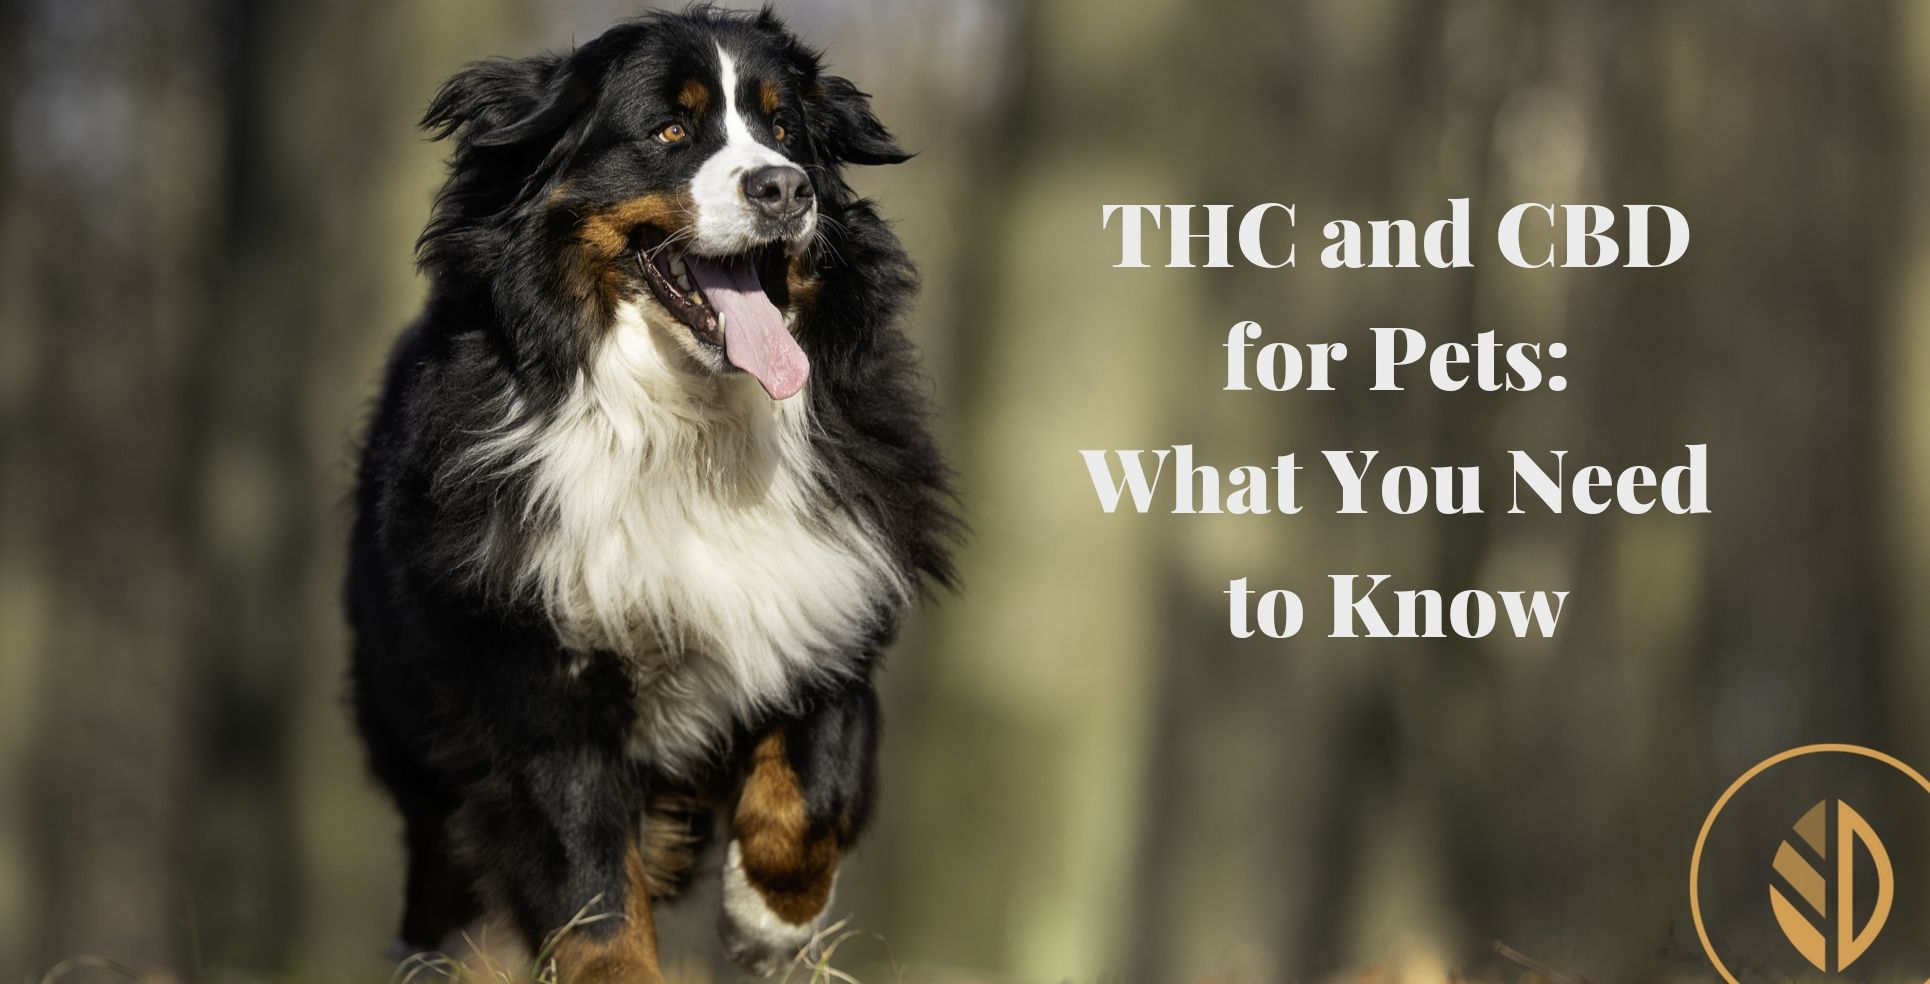 Everything You Need to Know About Cannabis Products for Pets